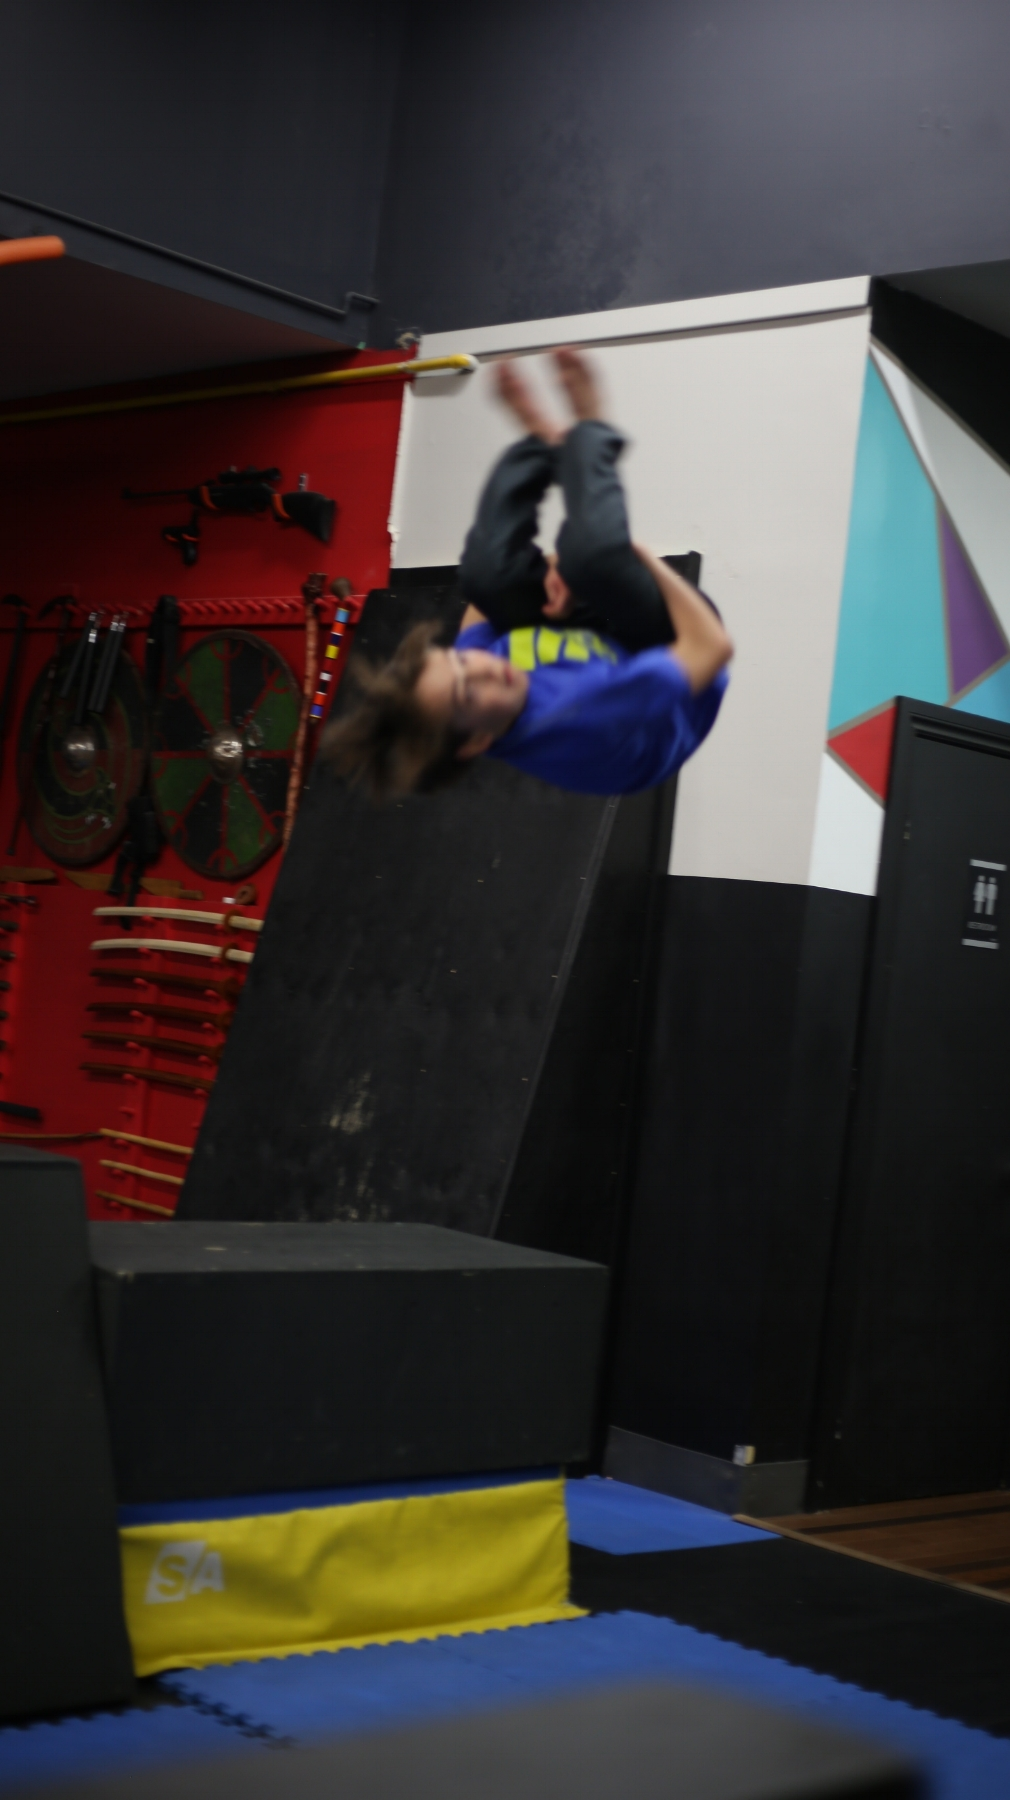 advanced pk  Students learn more difficult Parkour skills and advanced Parkour safety techniques including how to dive roll, roll out, precision landing, flow with ease, climb, jump from heights, and vault an obstacle safely using a variety of advanced and intermediate vaults. Advanced participants also benefit from physical fitness and strengthening exercises.